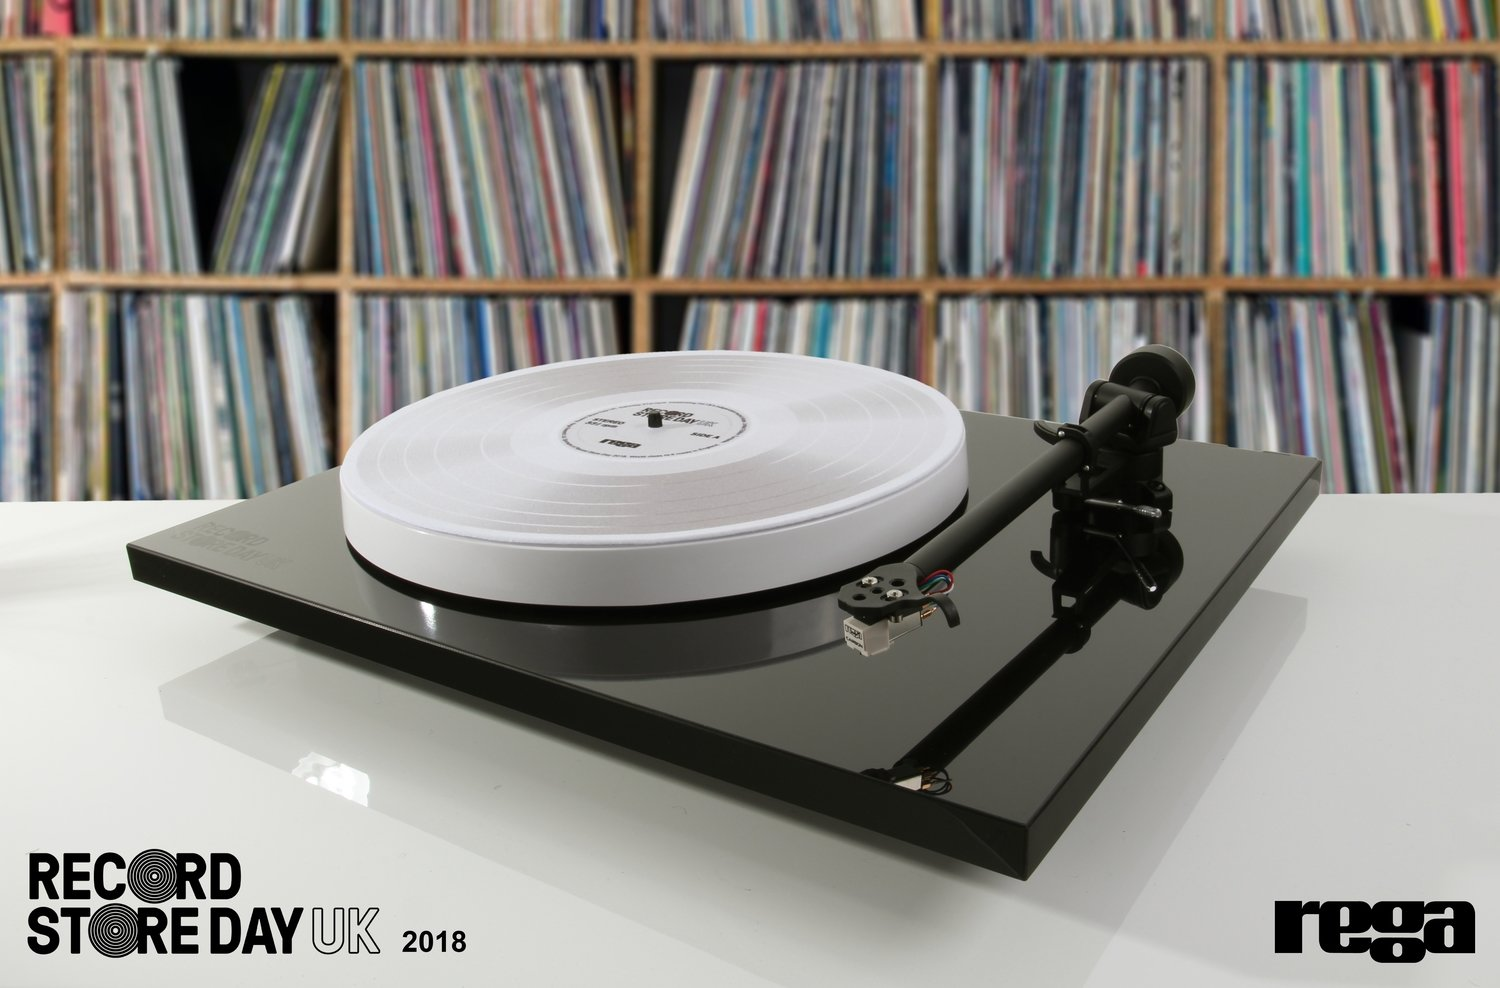 Rega RSD 18 Turntable (Limited to just 500)